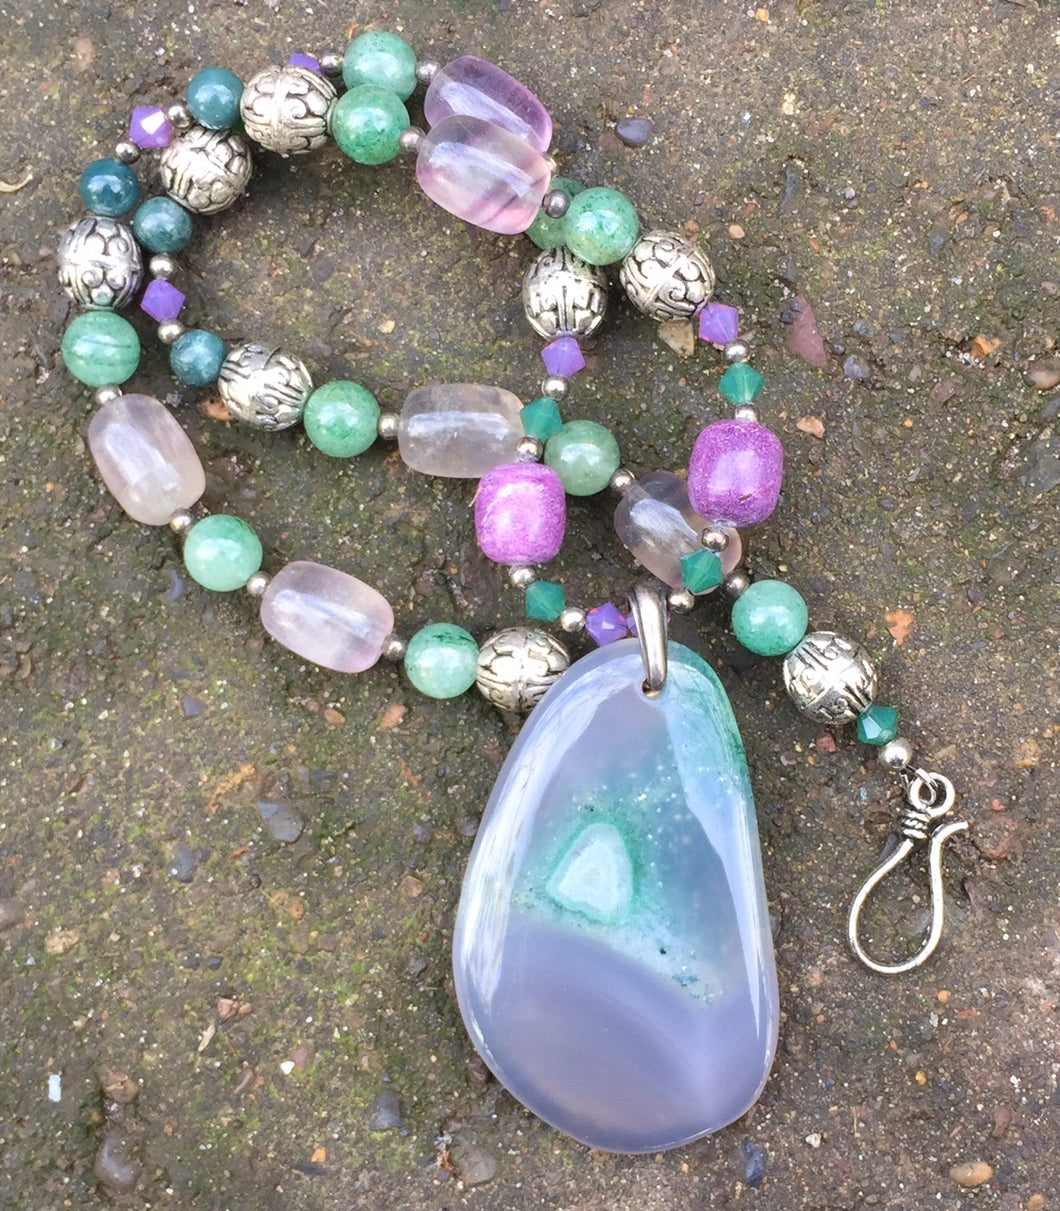 Mineral Necklace - Druzy Agate with Green Aventurine and Fluorite